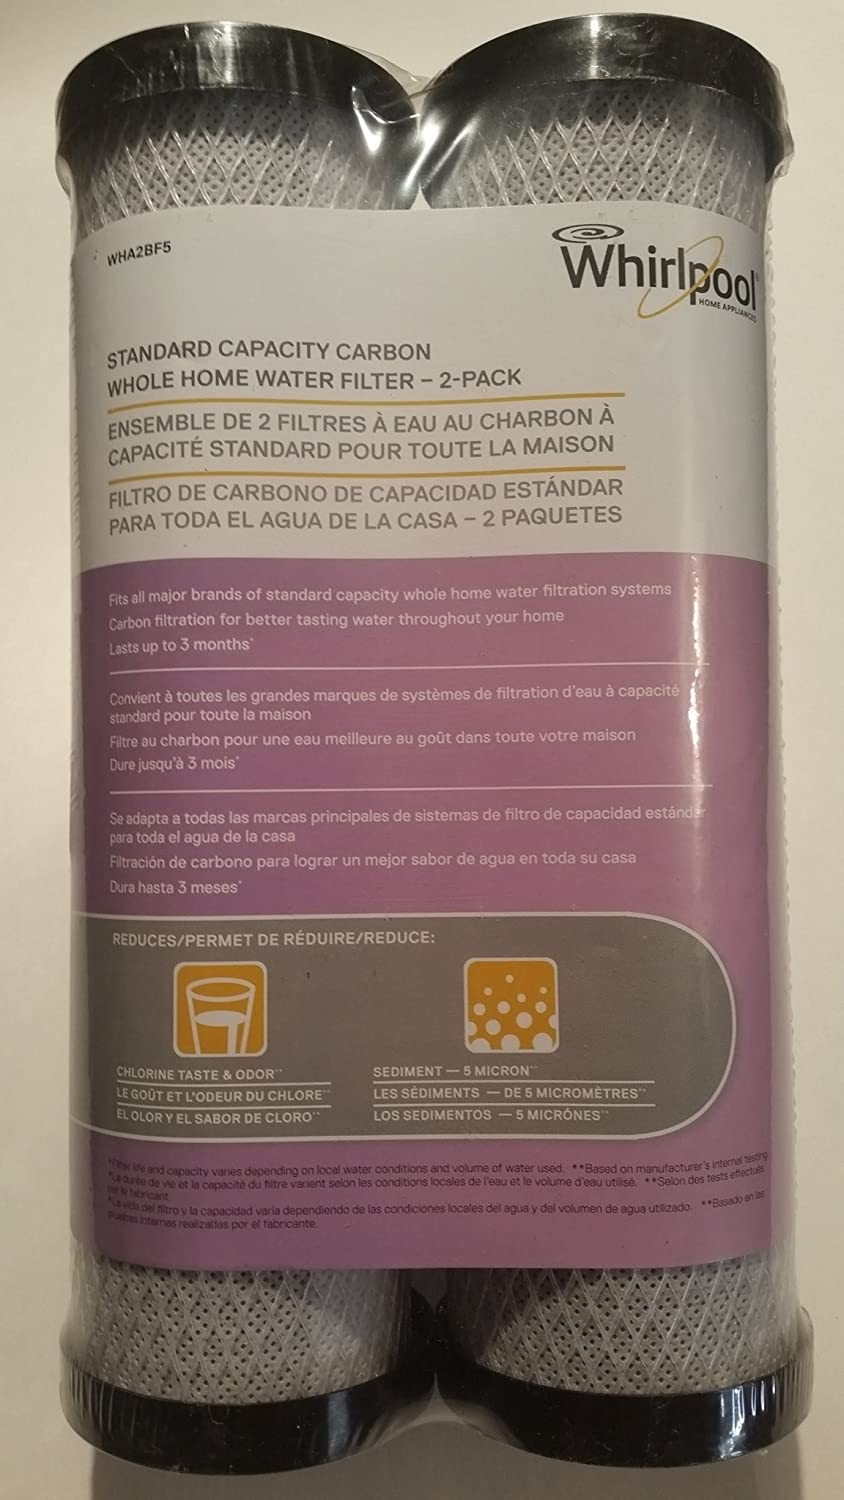 Whirlpool Refrigerator Water Filters Lowes Amazoncom Whirlpool Wha2bf5 Standard Capacity Carbon Whole Home